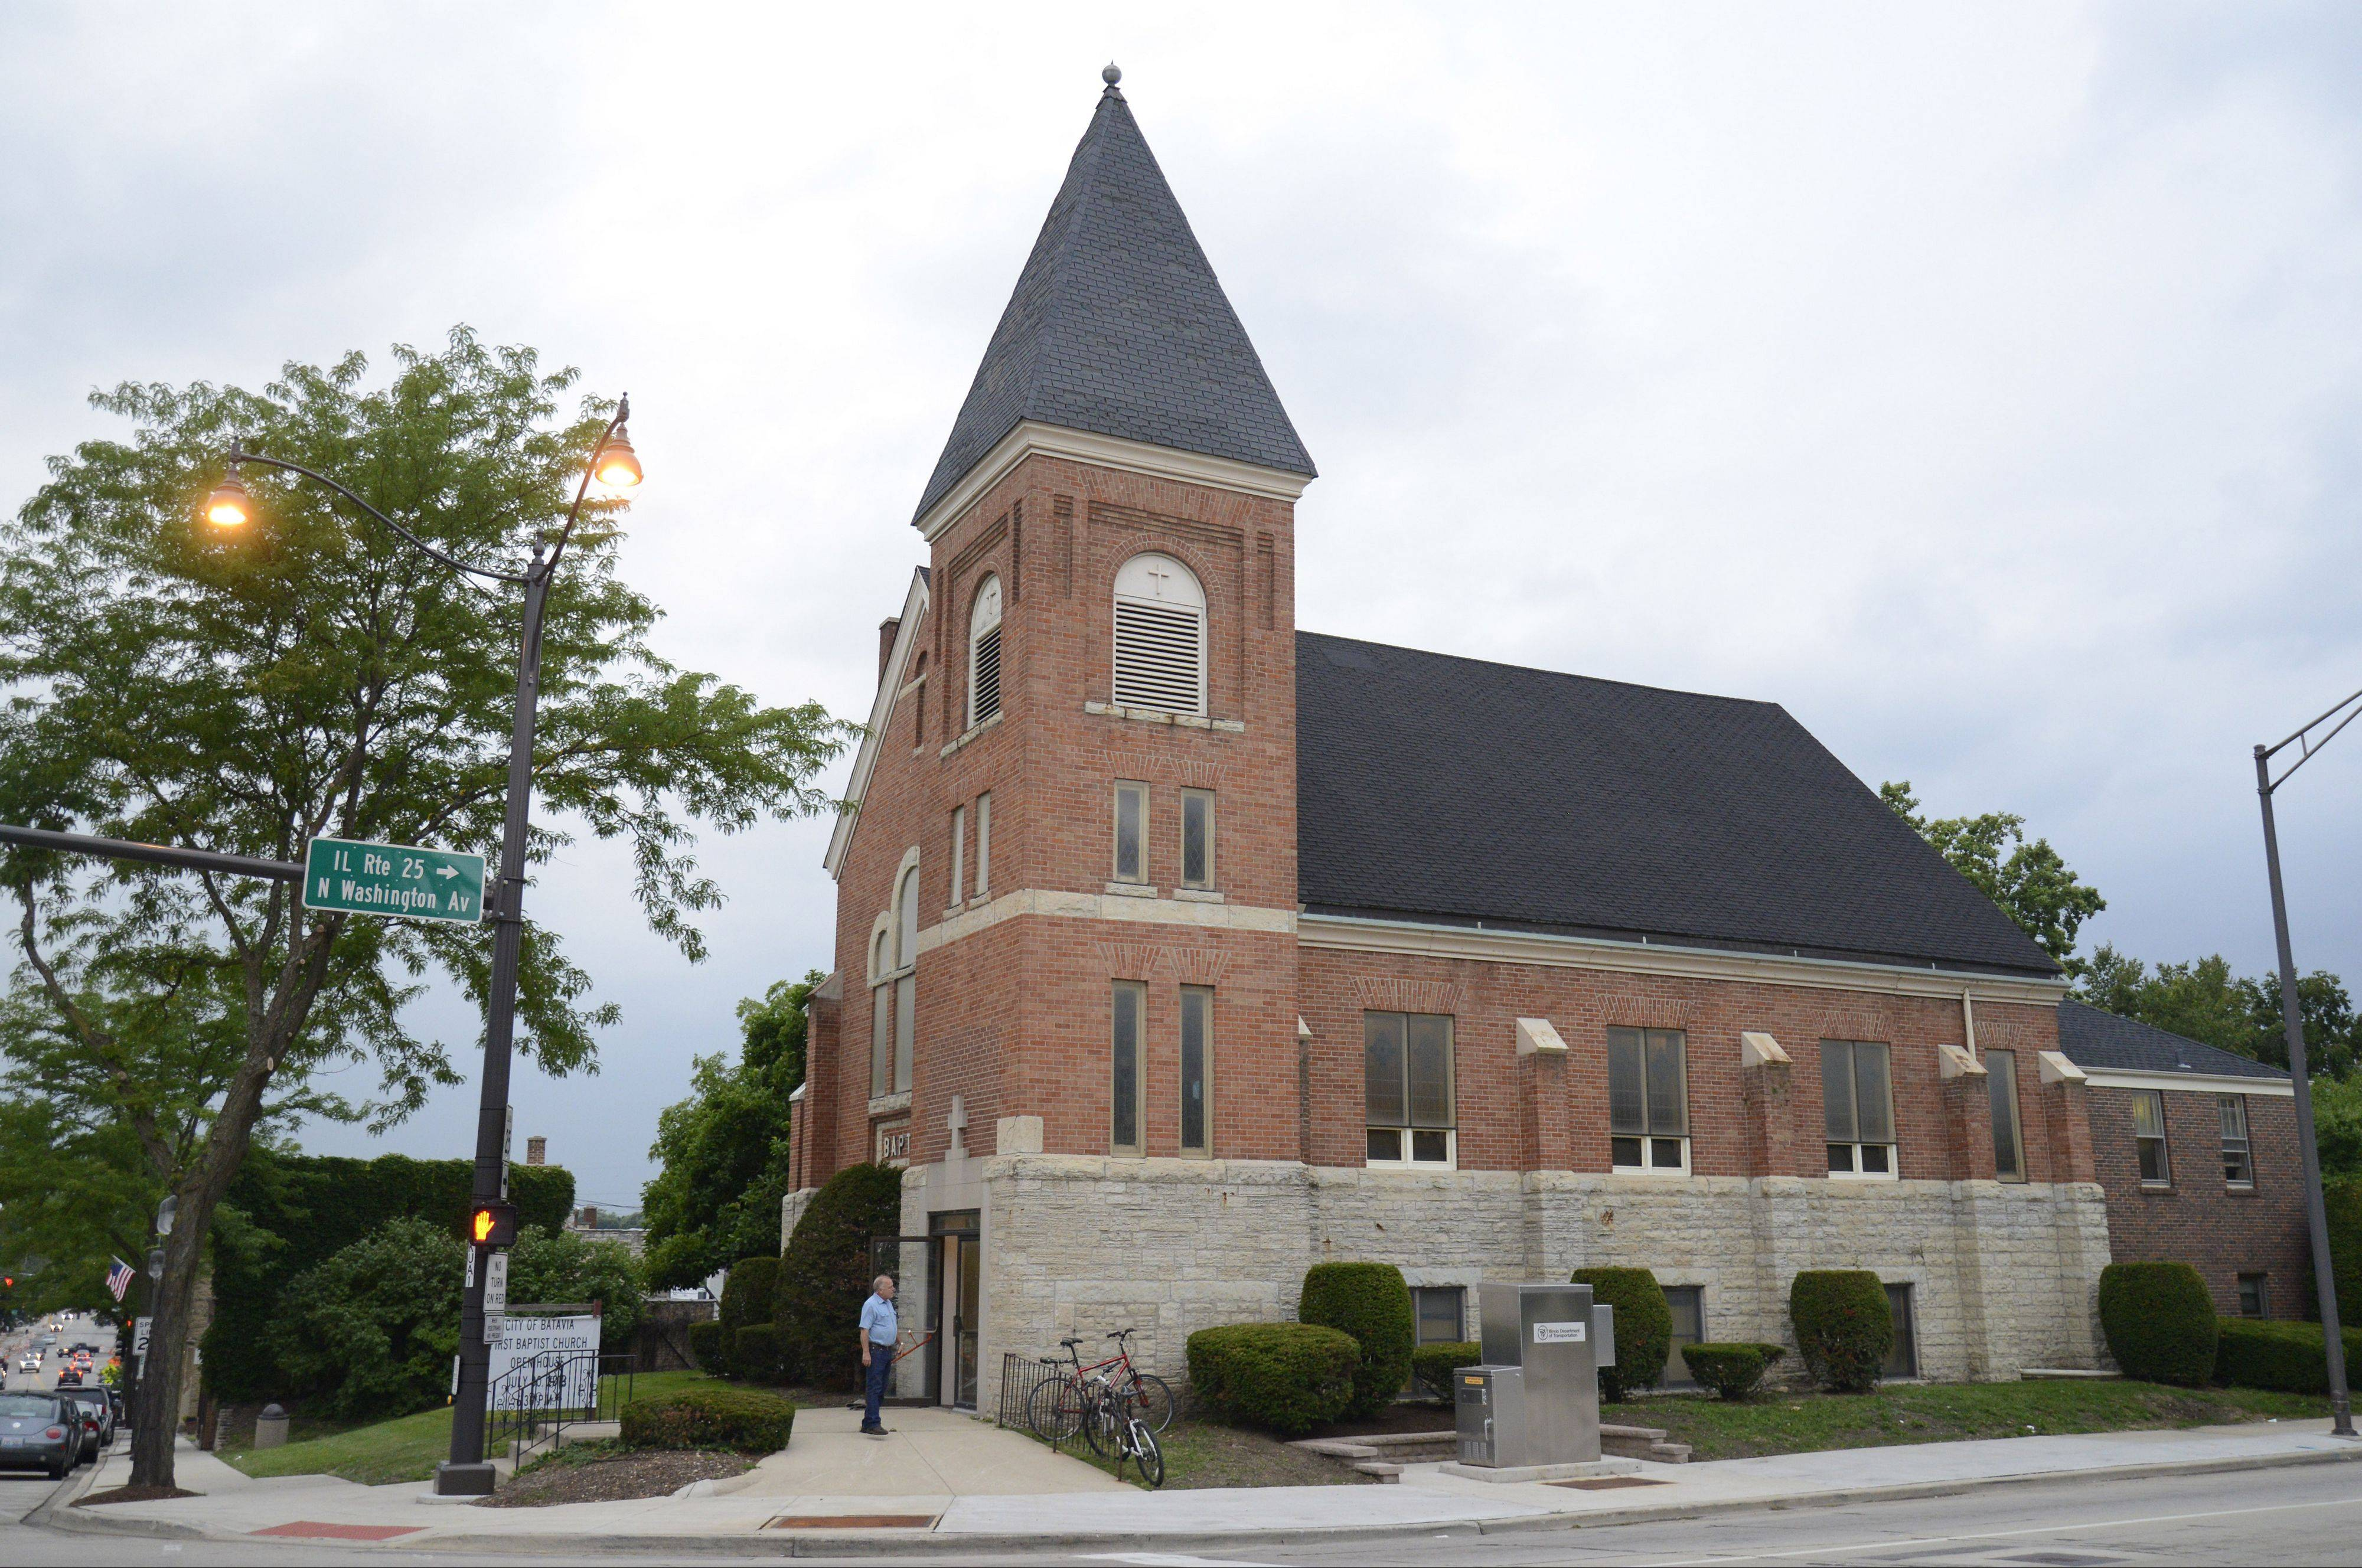 Members of the public took self-guided tours of the First Baptist Church building at the intersection of Route 25 and Wilson Street in Batavia on Tuesday.